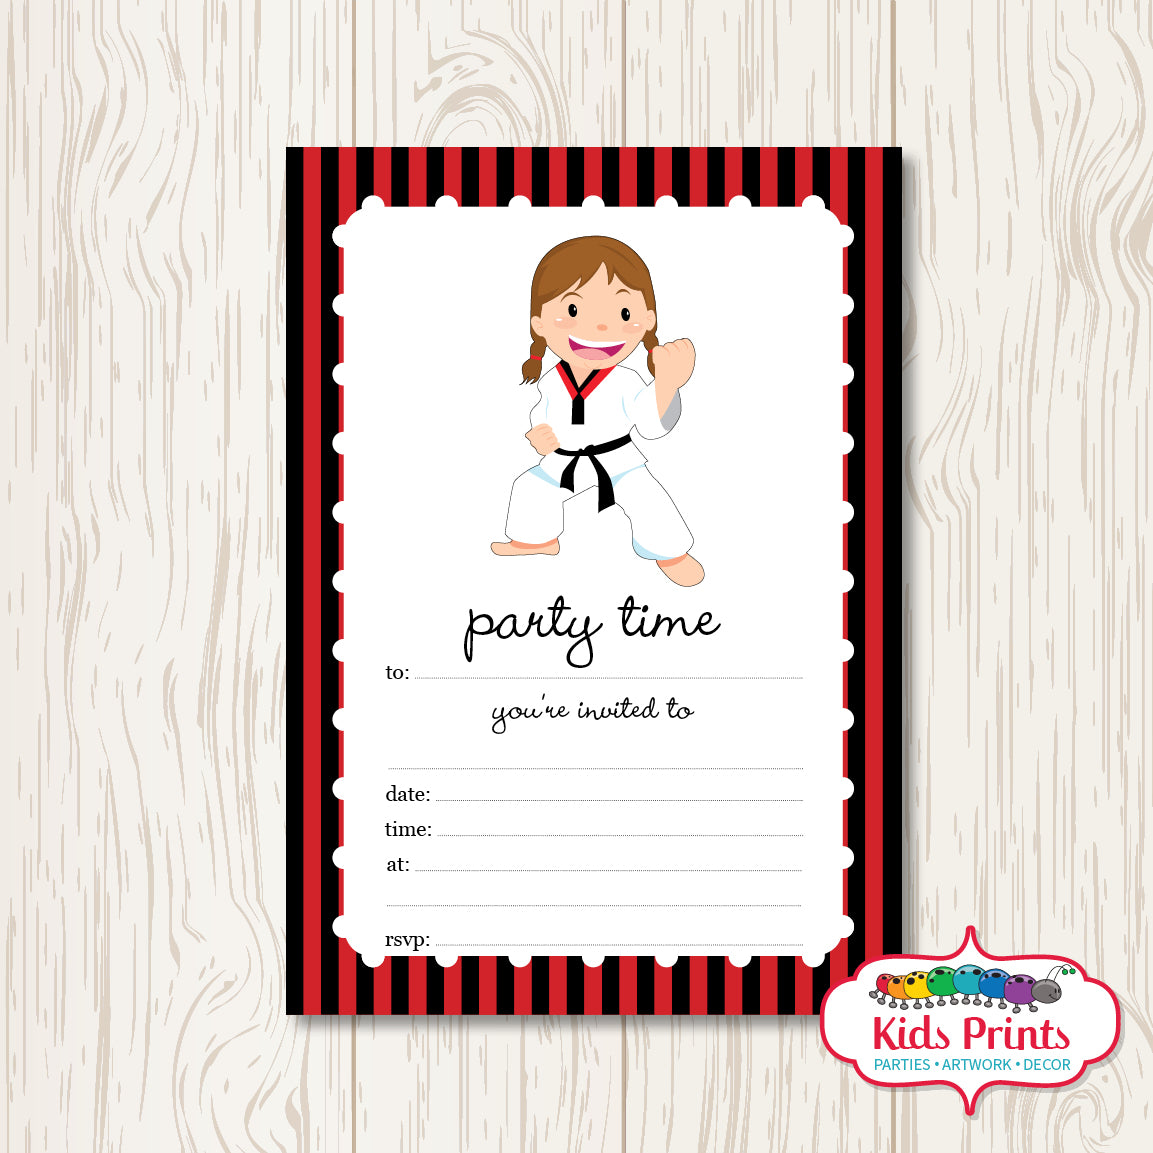 Girls Taekwondo Printable Birthday Invitation - Kids Prints Online - kids wall art printable - nursery art printable - printable invitations - digital invitations - kids wall art - kids prints